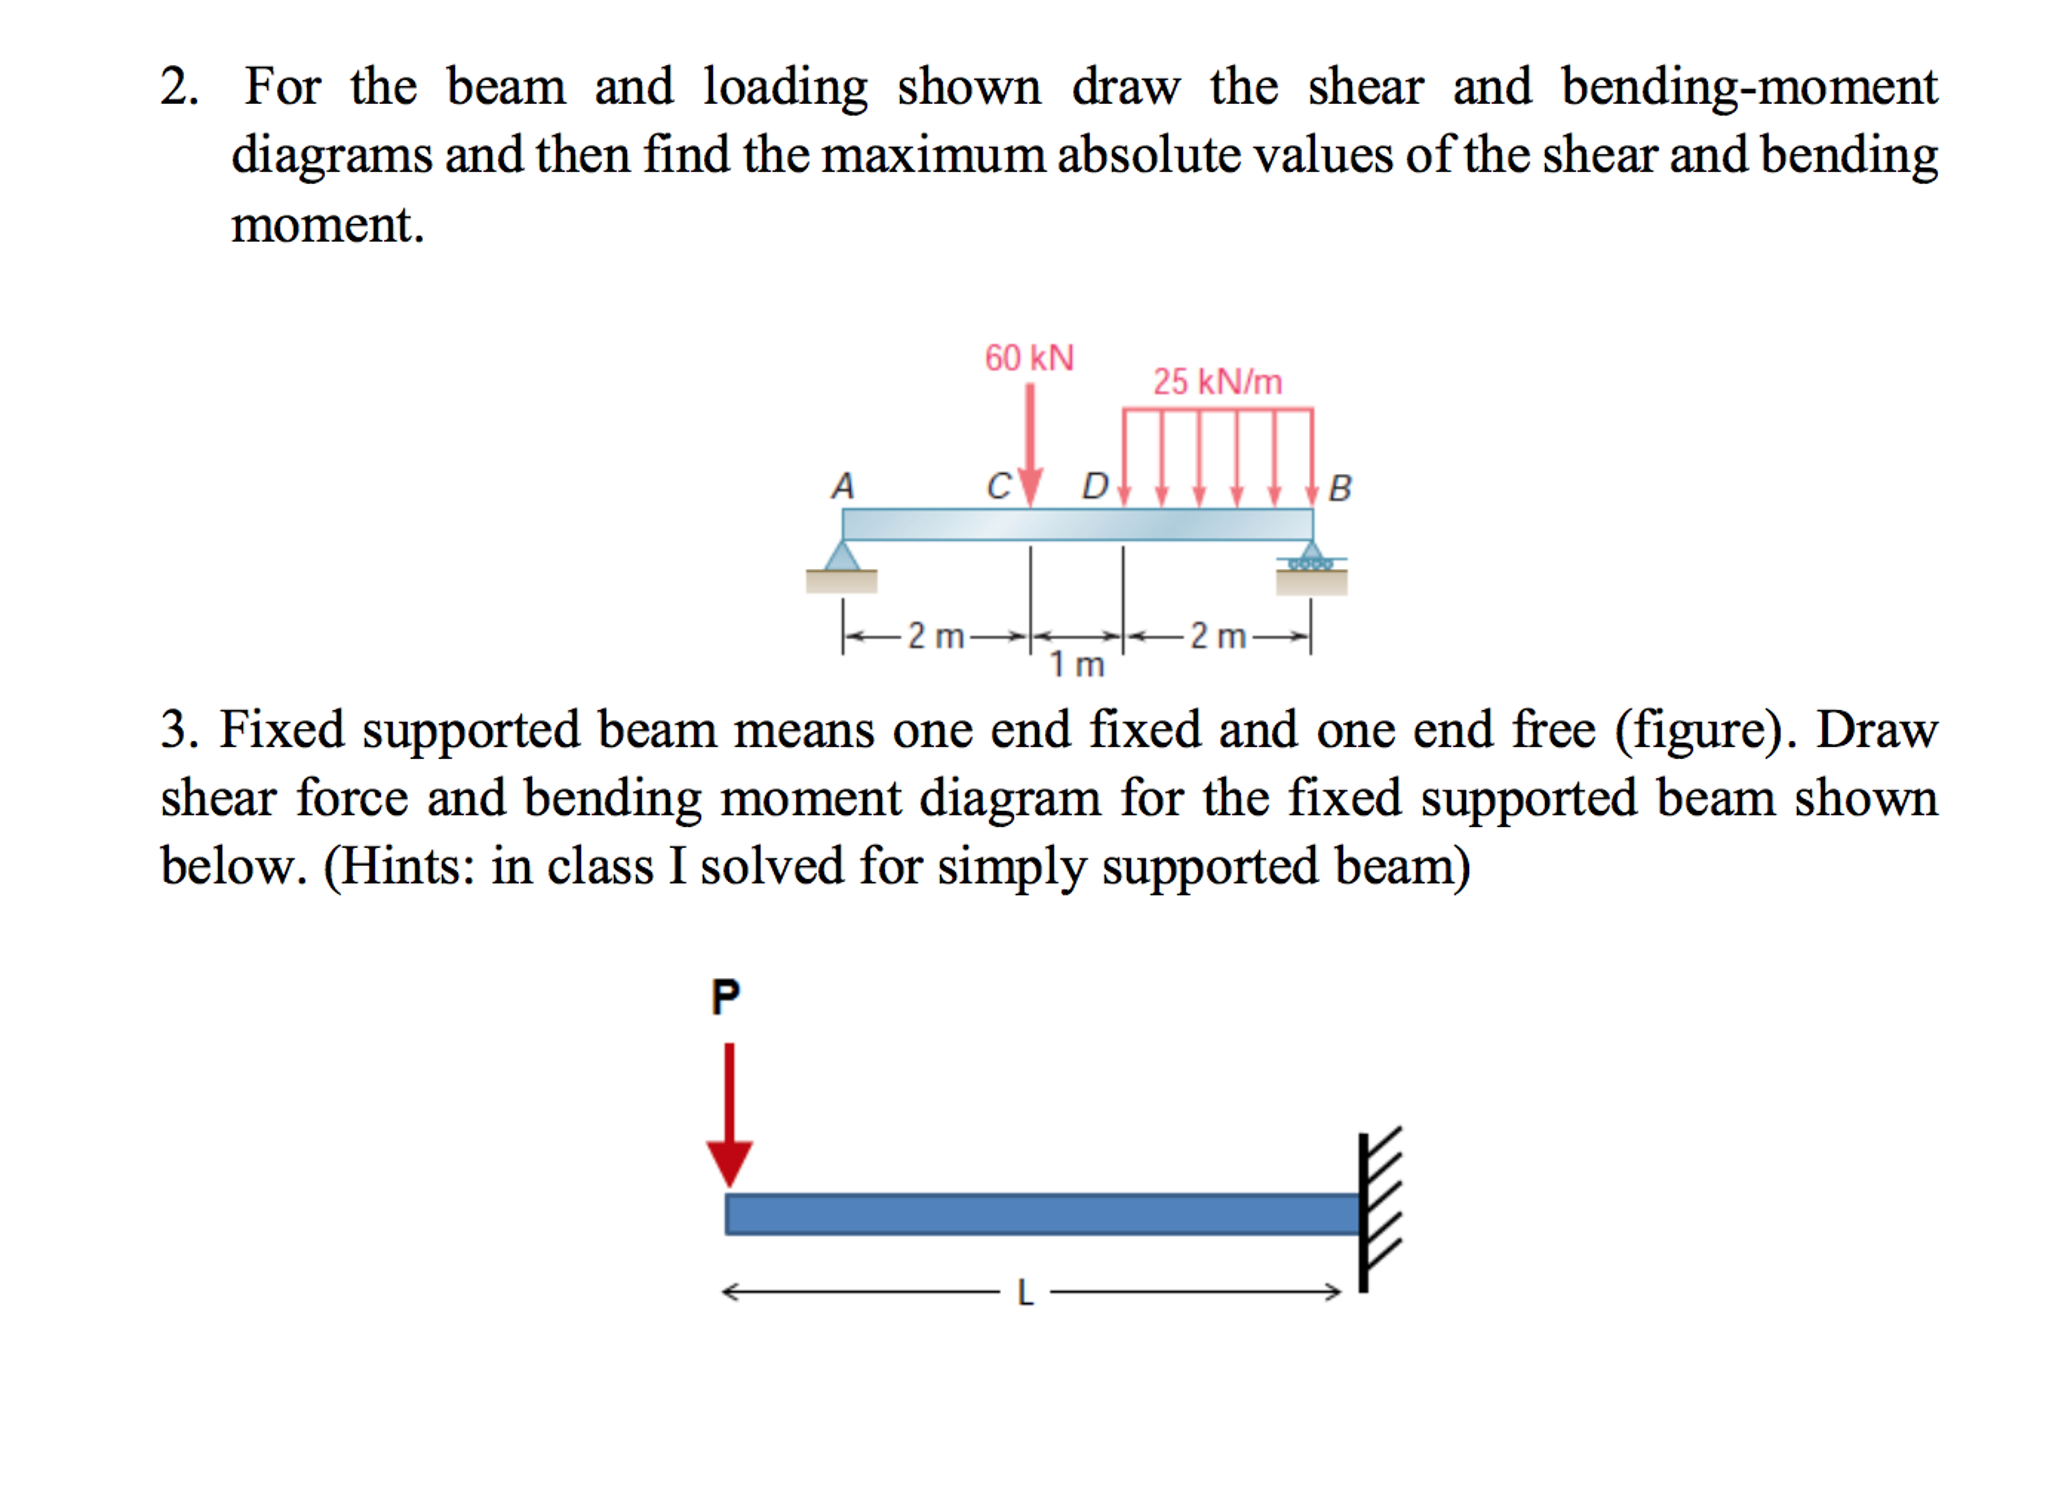 How To Draw Shear Force And Bending Moment Diagram